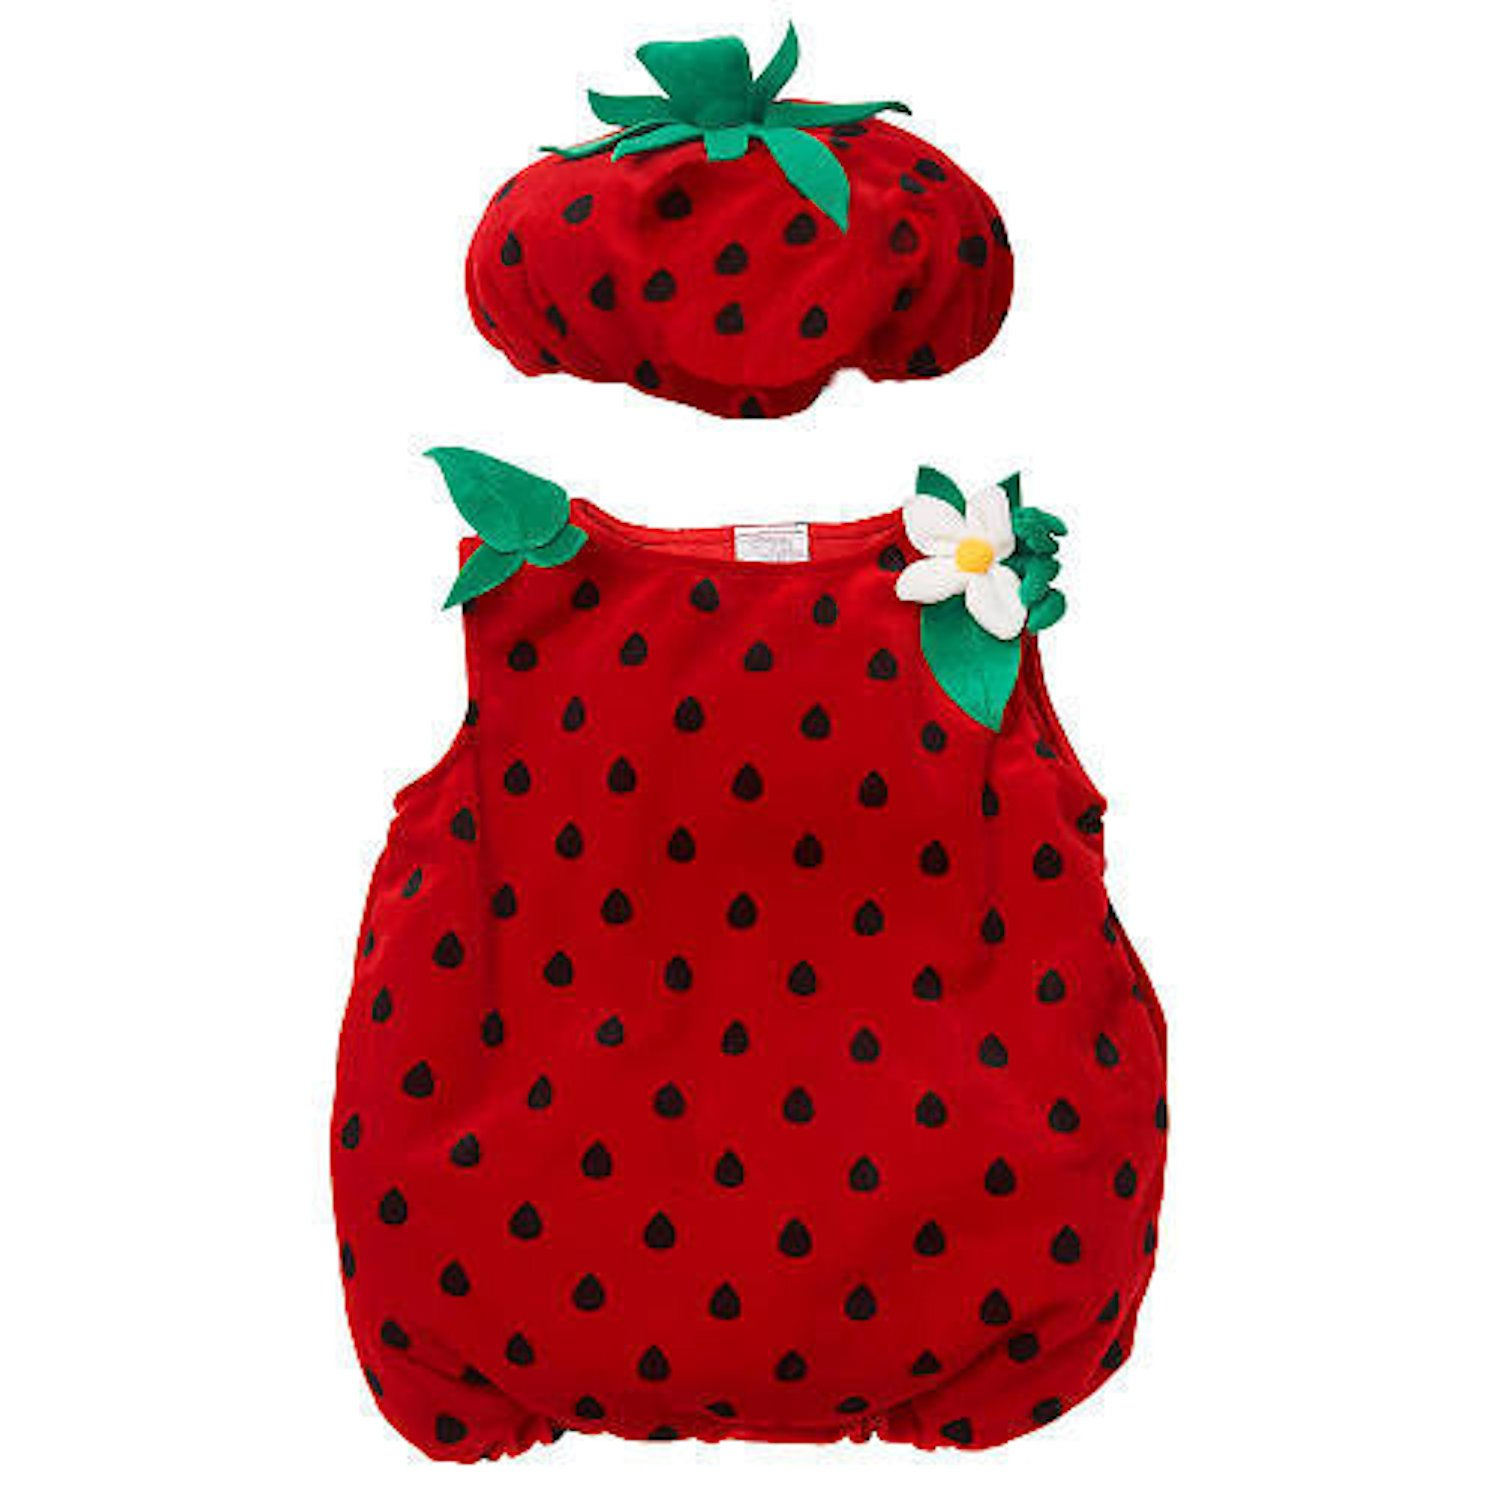 Amazon.com Koala Kids Strawberry Baby Girls 2 Piece Plush Halloween Costume Clothing  sc 1 st  Amazon.com & Amazon.com: Koala Kids Strawberry Baby Girls 2 Piece Plush Halloween ...